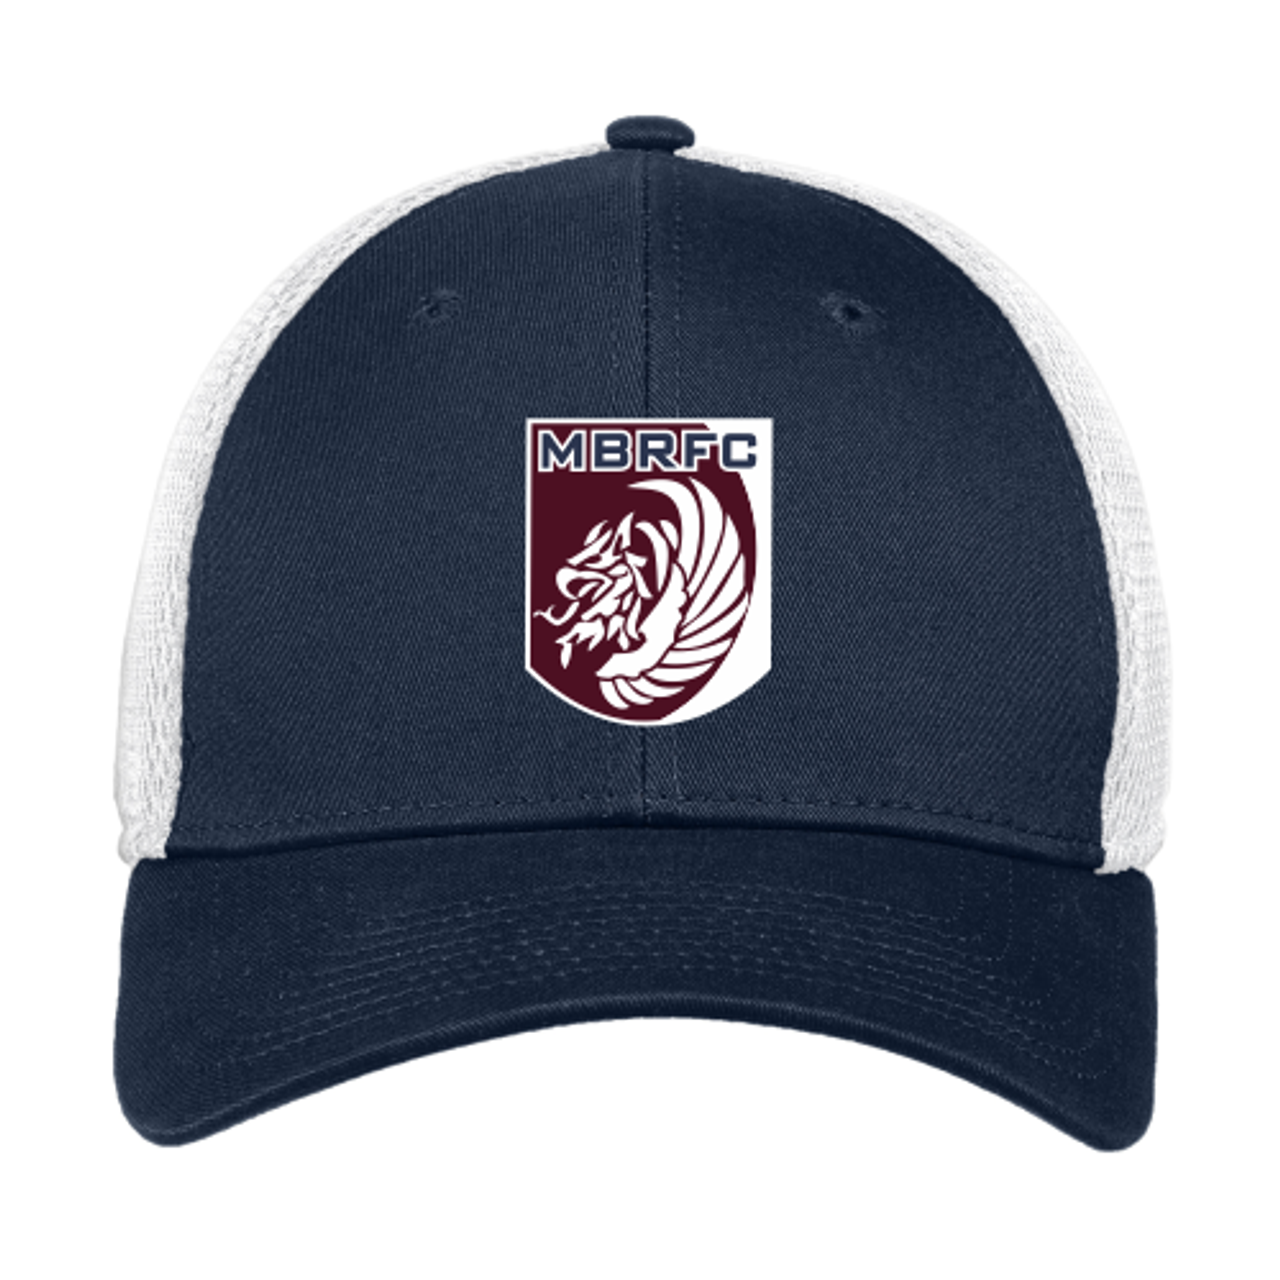 MB Rugby Stretch-Fit Mesh-Back Hat, Navy/White